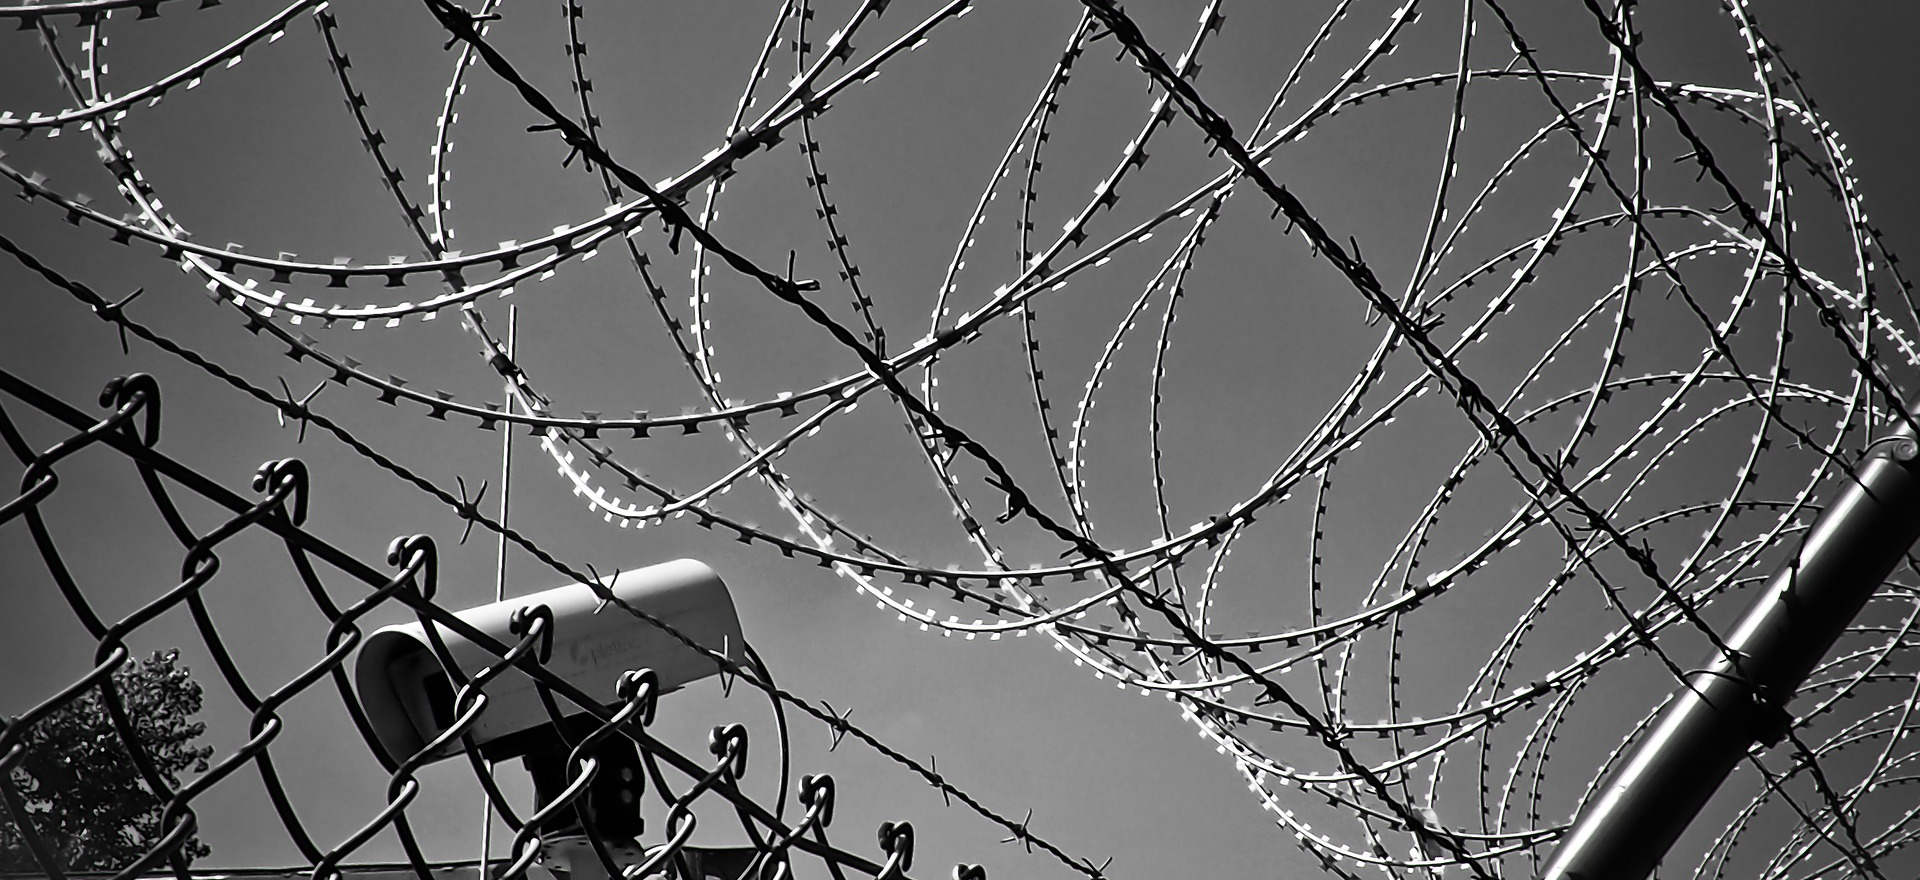 barbed-wire-1670222_1920.jpg